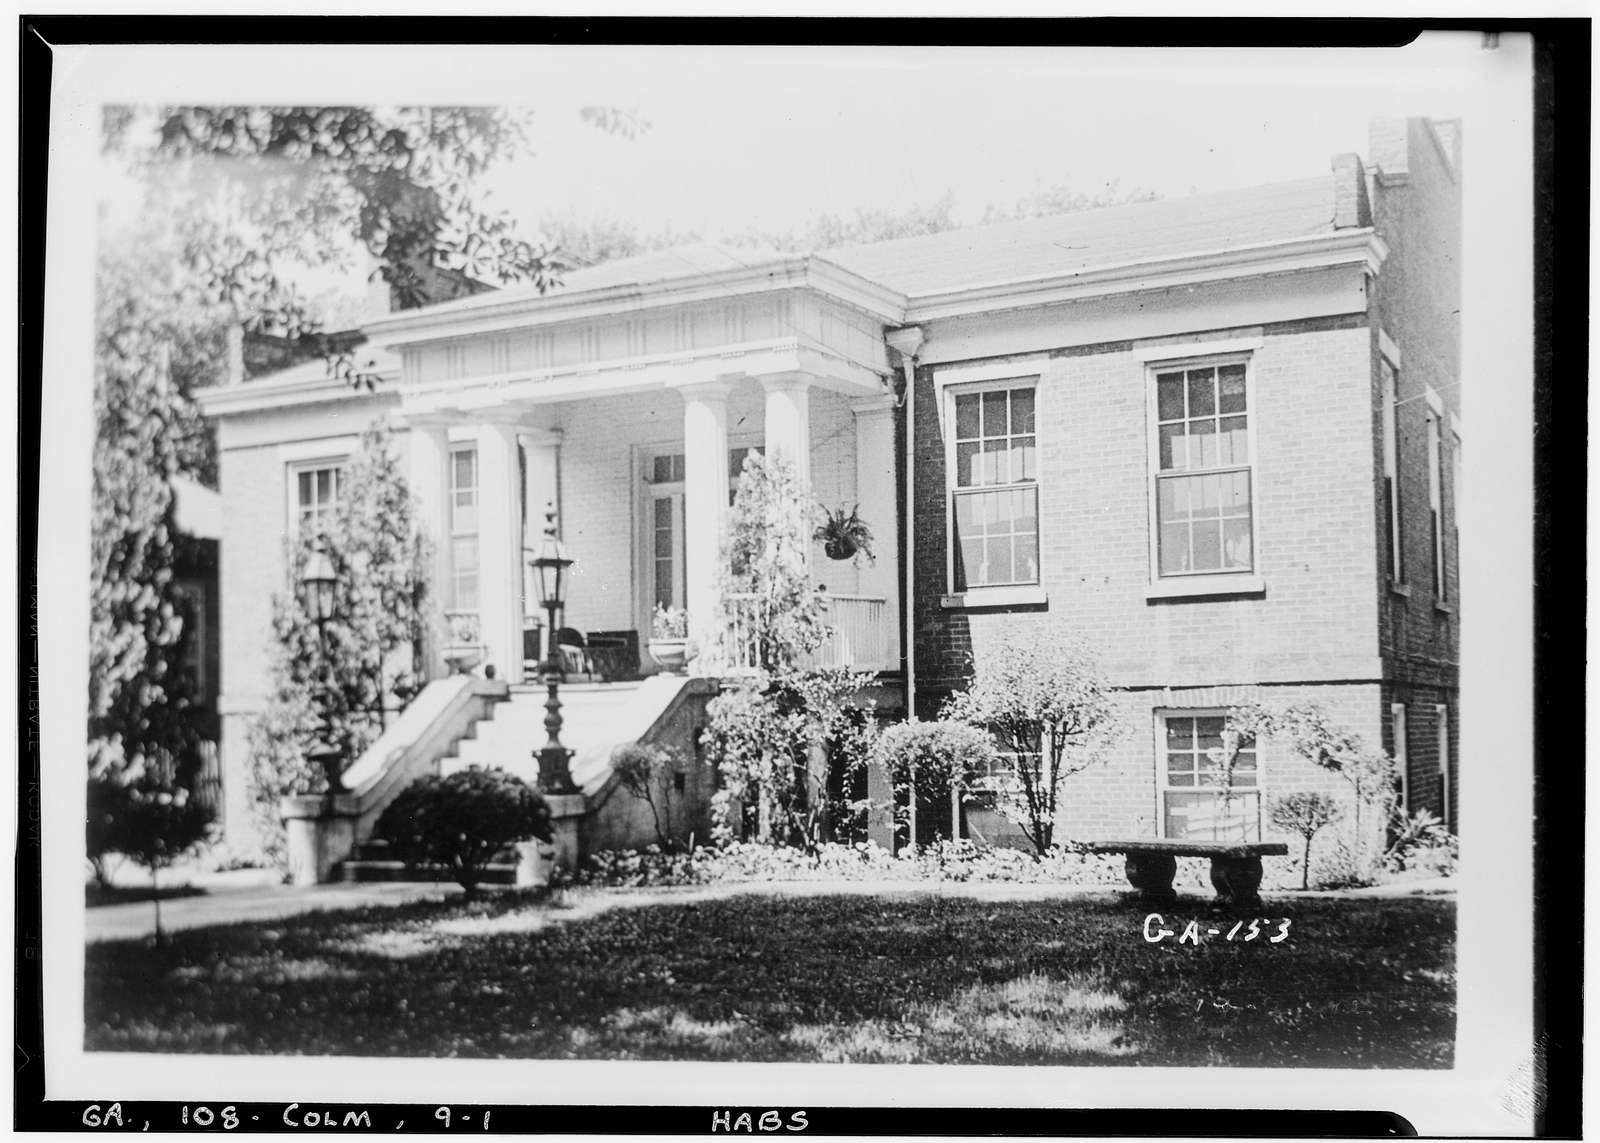 Alexander-McGehee-Woodall House, 1543 Second Avenue, Columbus, Muscogee County, GA